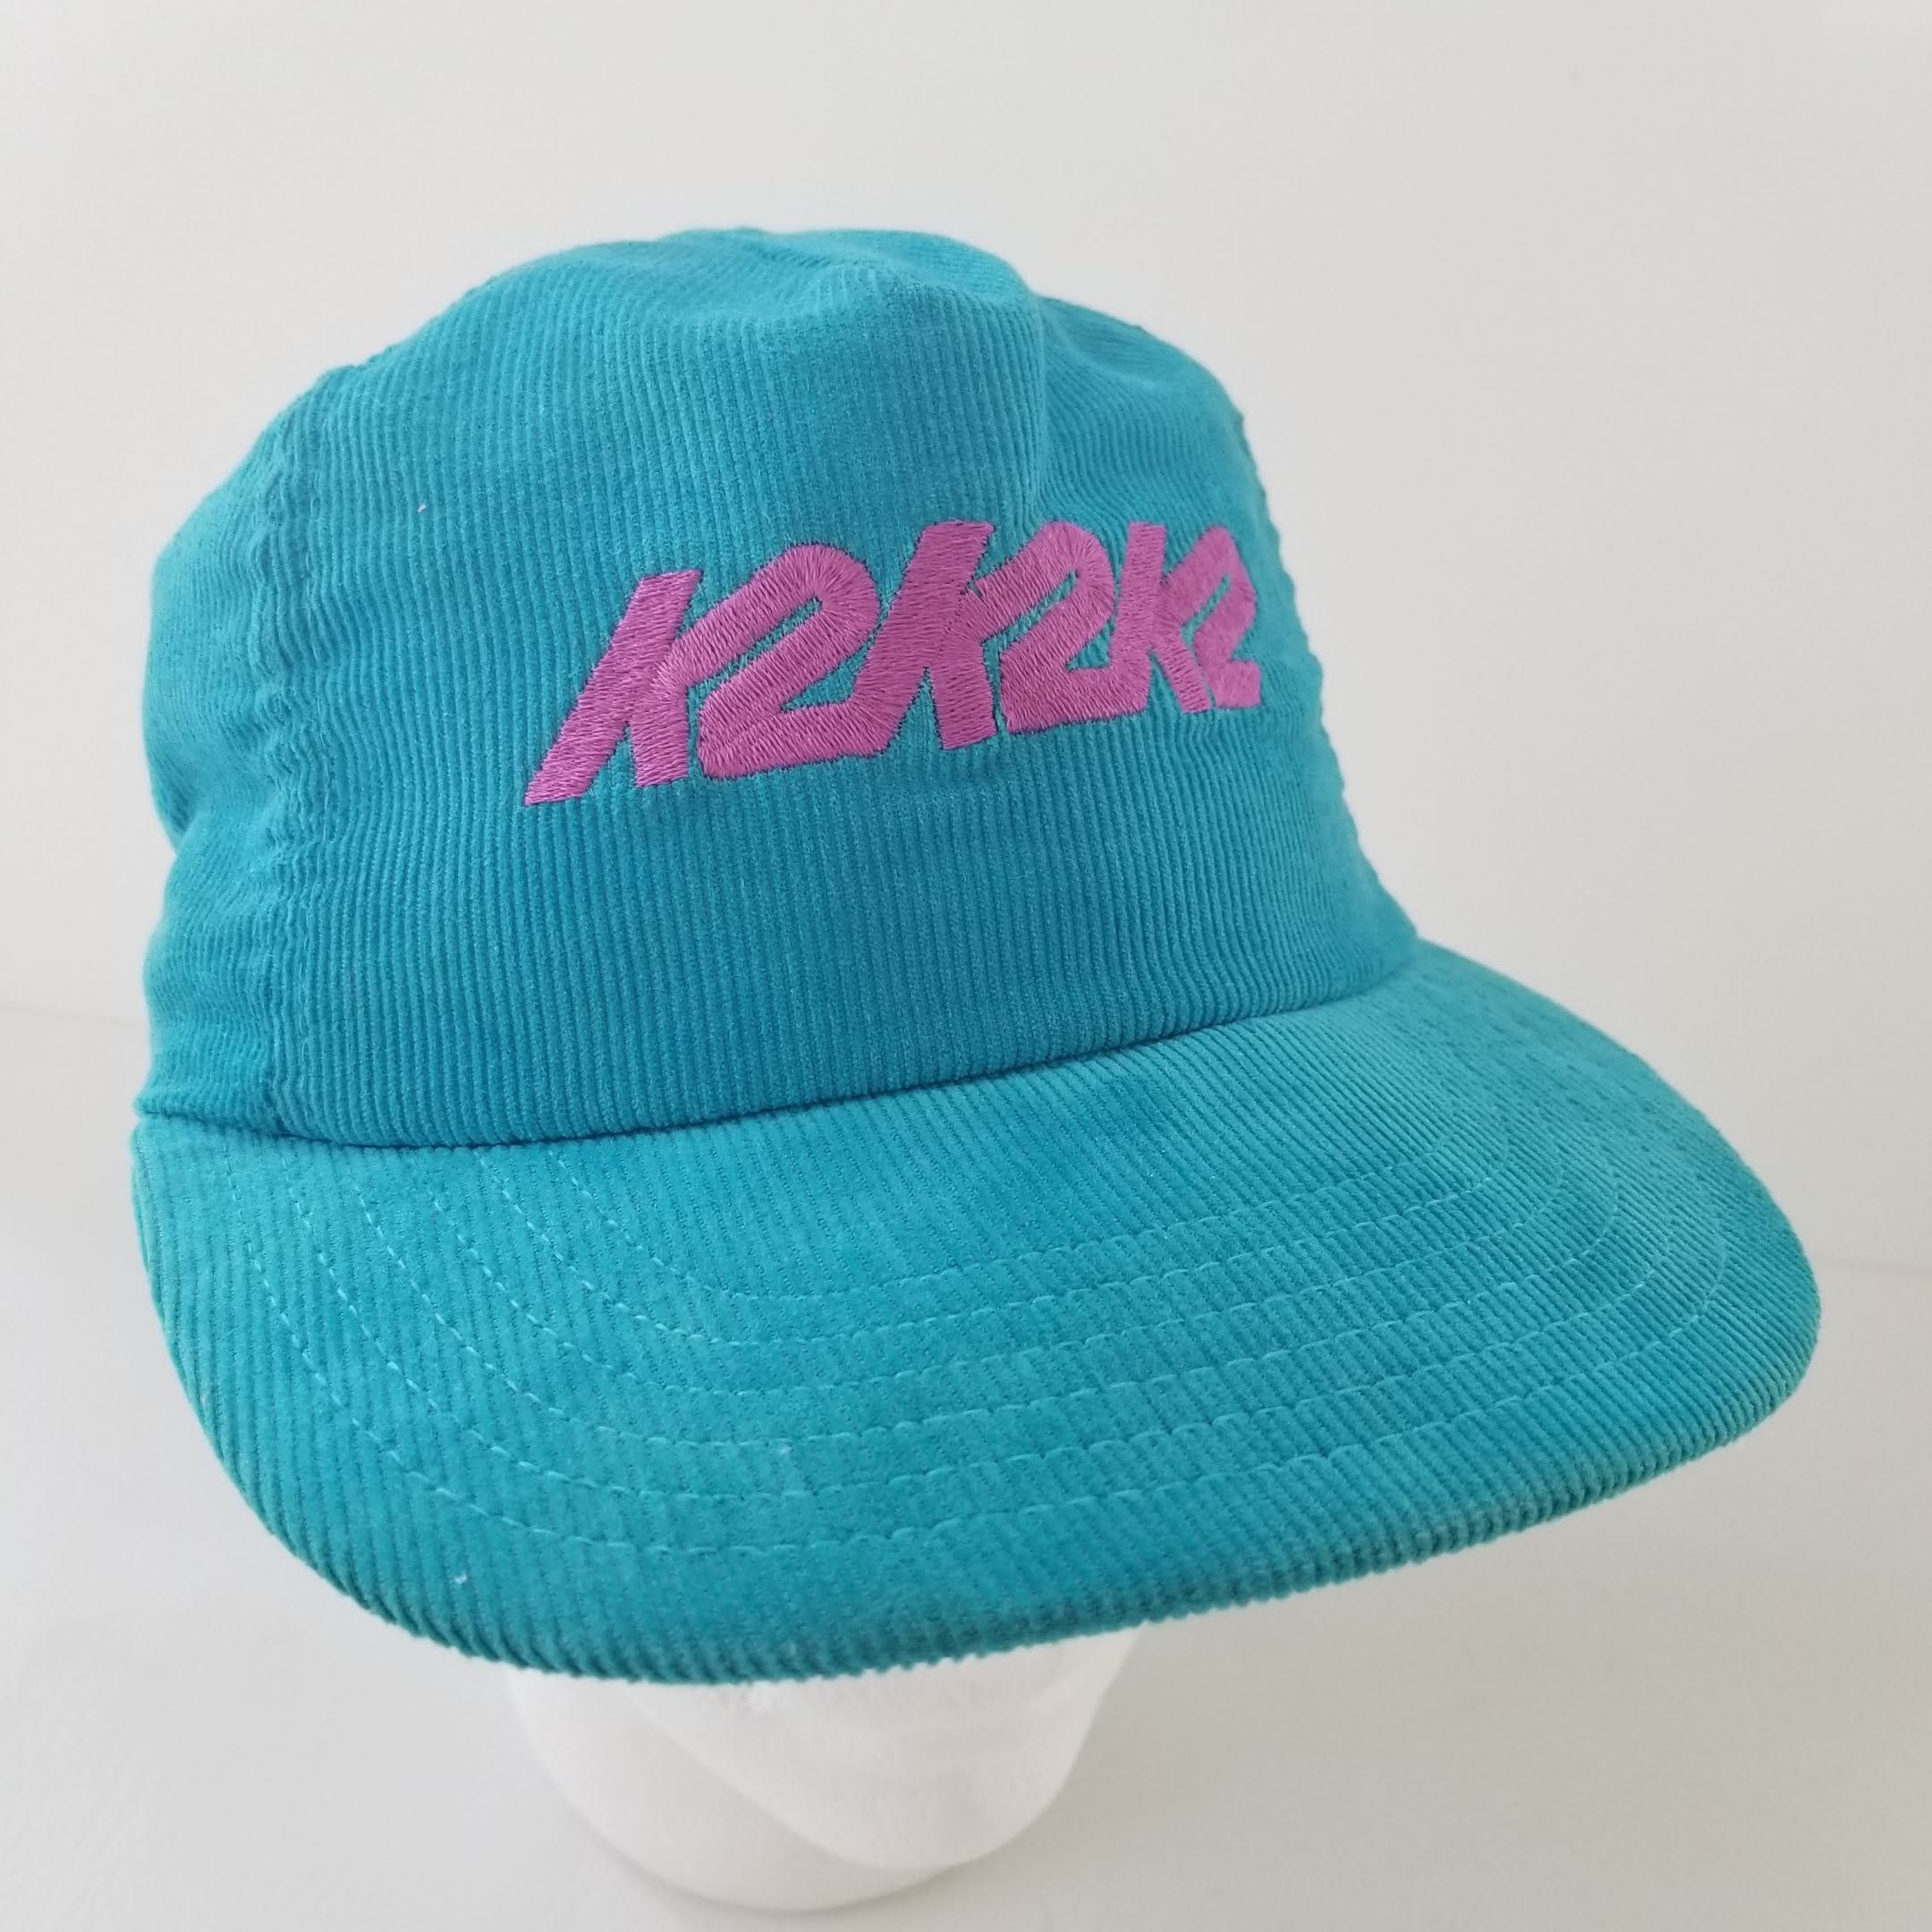 0fe9086b595 Vintage K2 Corduroy Trucker Hat Cap Snapback Teal Purple Made in the USA  Ski Snowboard by TraSheeWomen on Etsy  k2  ski  snowboard  vintage   truckerhat ...